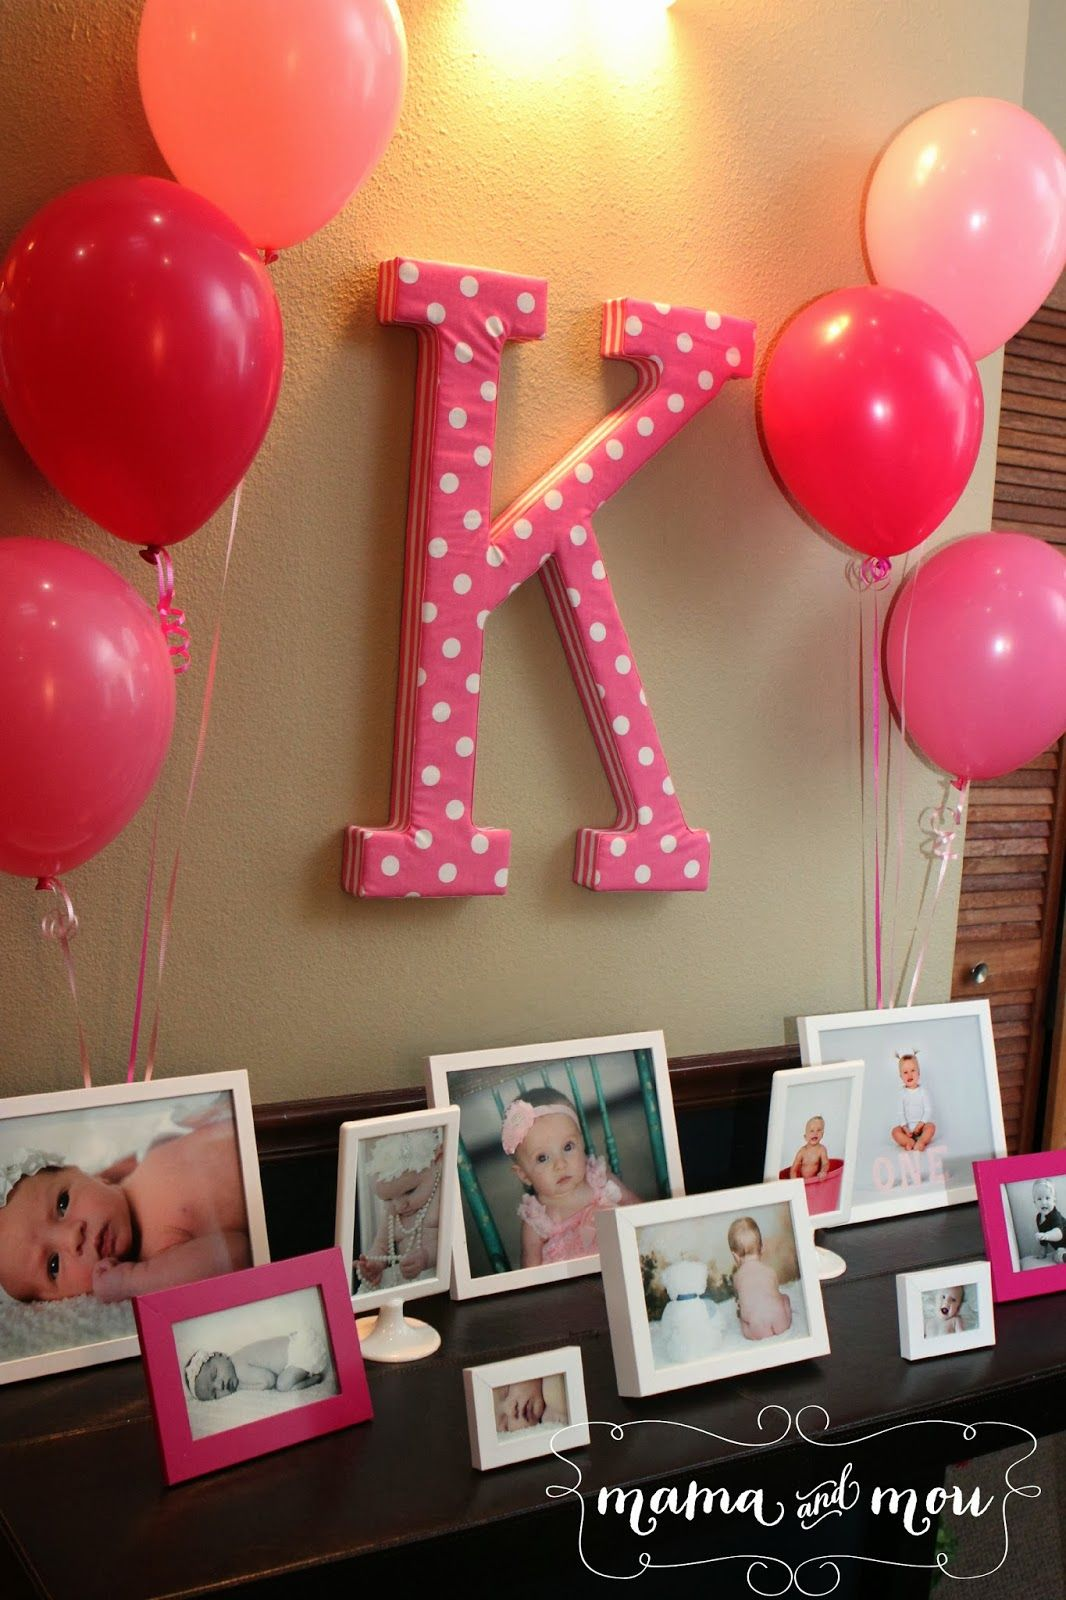 Simple picture frames with pictures... Minus all the pink